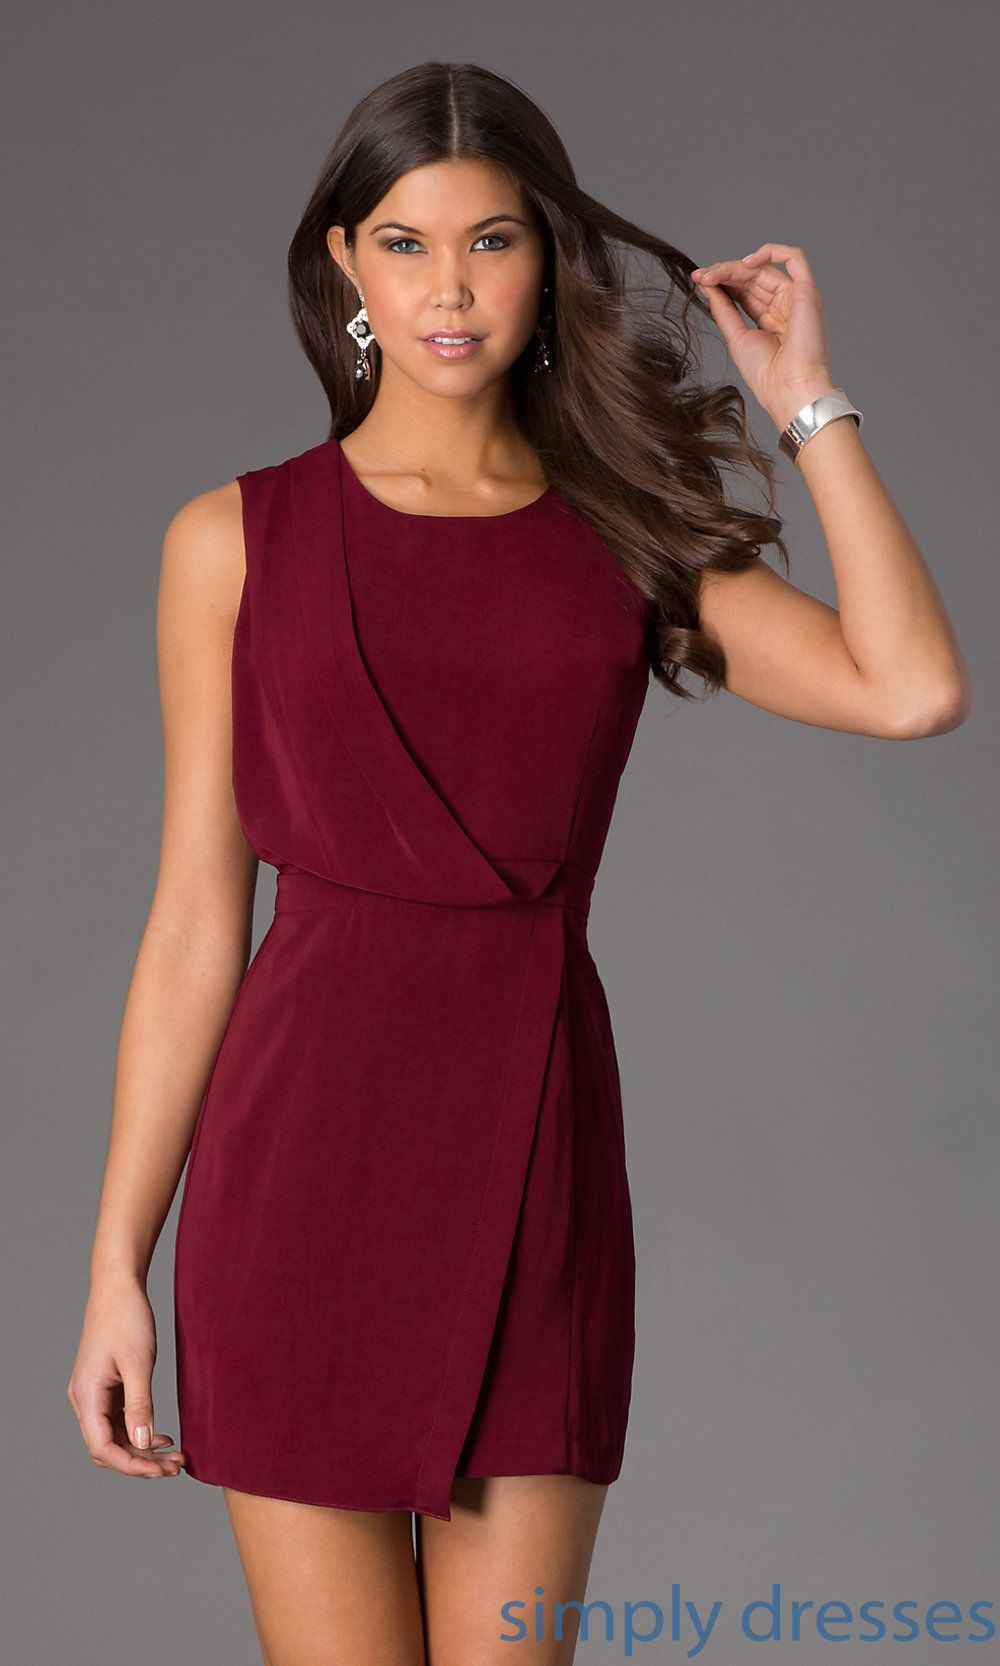 68838fdd4a5f Shop short wrap cocktail dresses with scoop necks at SimplyDresses. Cheap  sleeveless cocktail dresses for work or semi-formal parties.